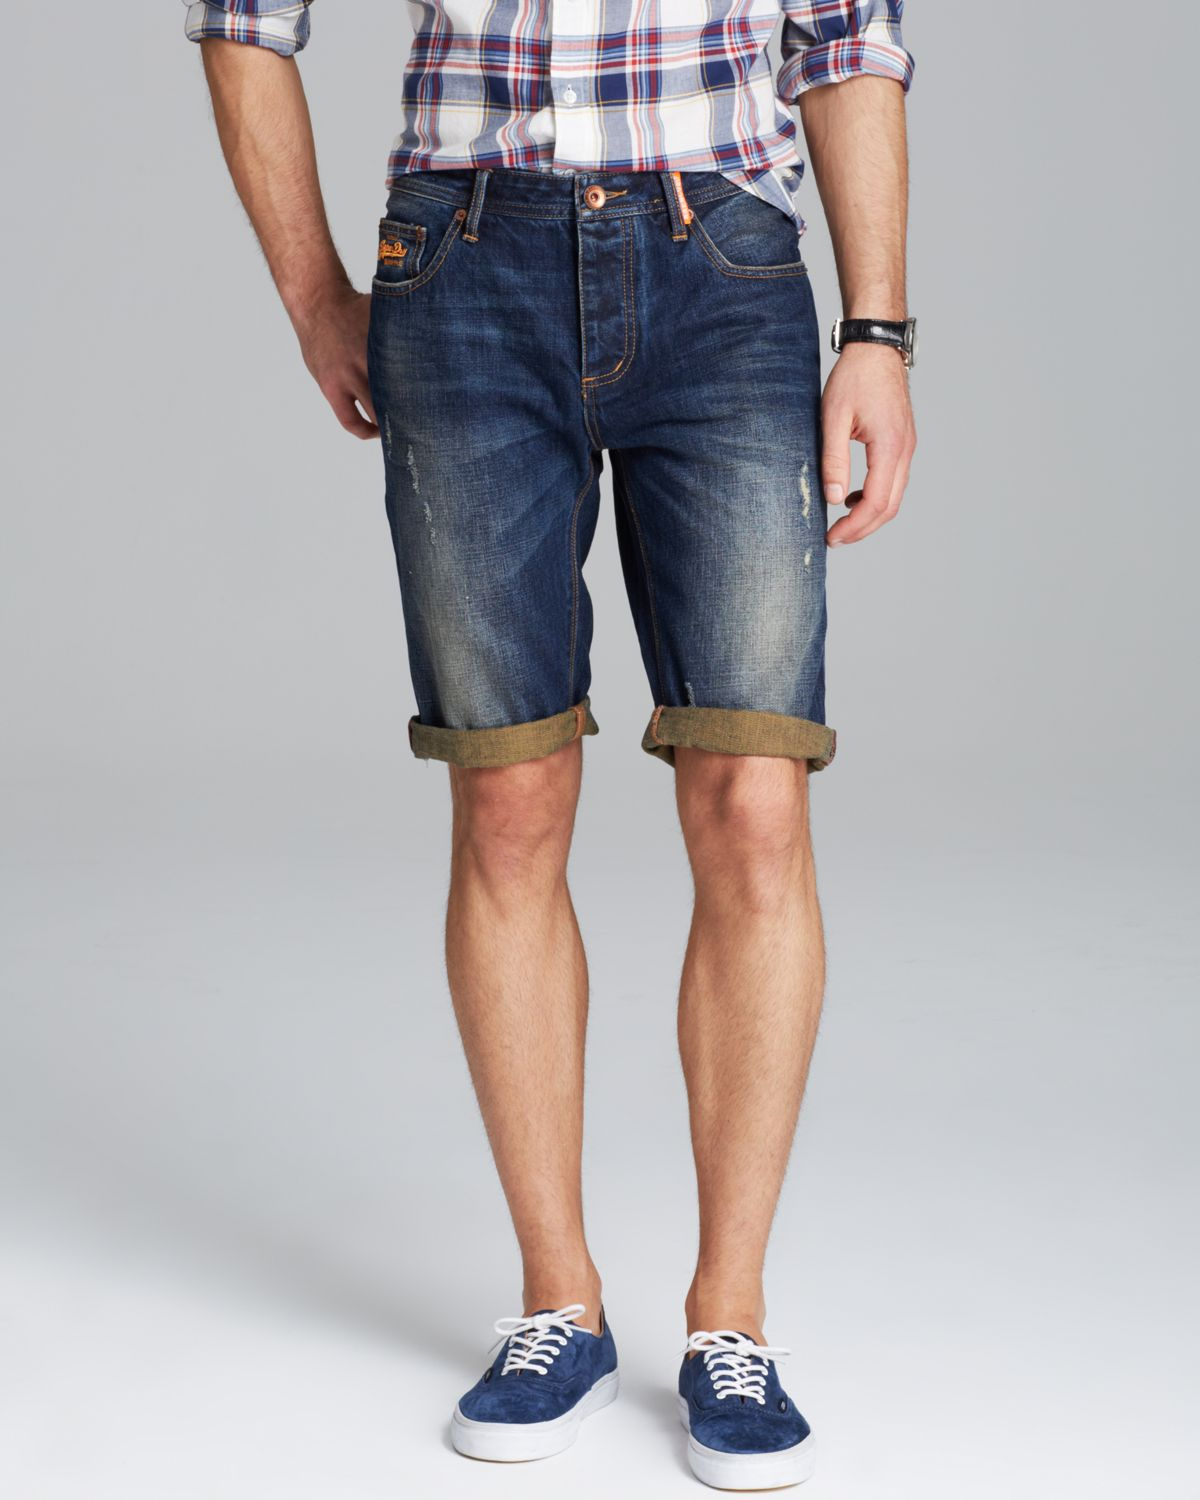 Superdry New Officer Slim Jean Shorts in Blue for Men - Lyst ec1d5c706c30